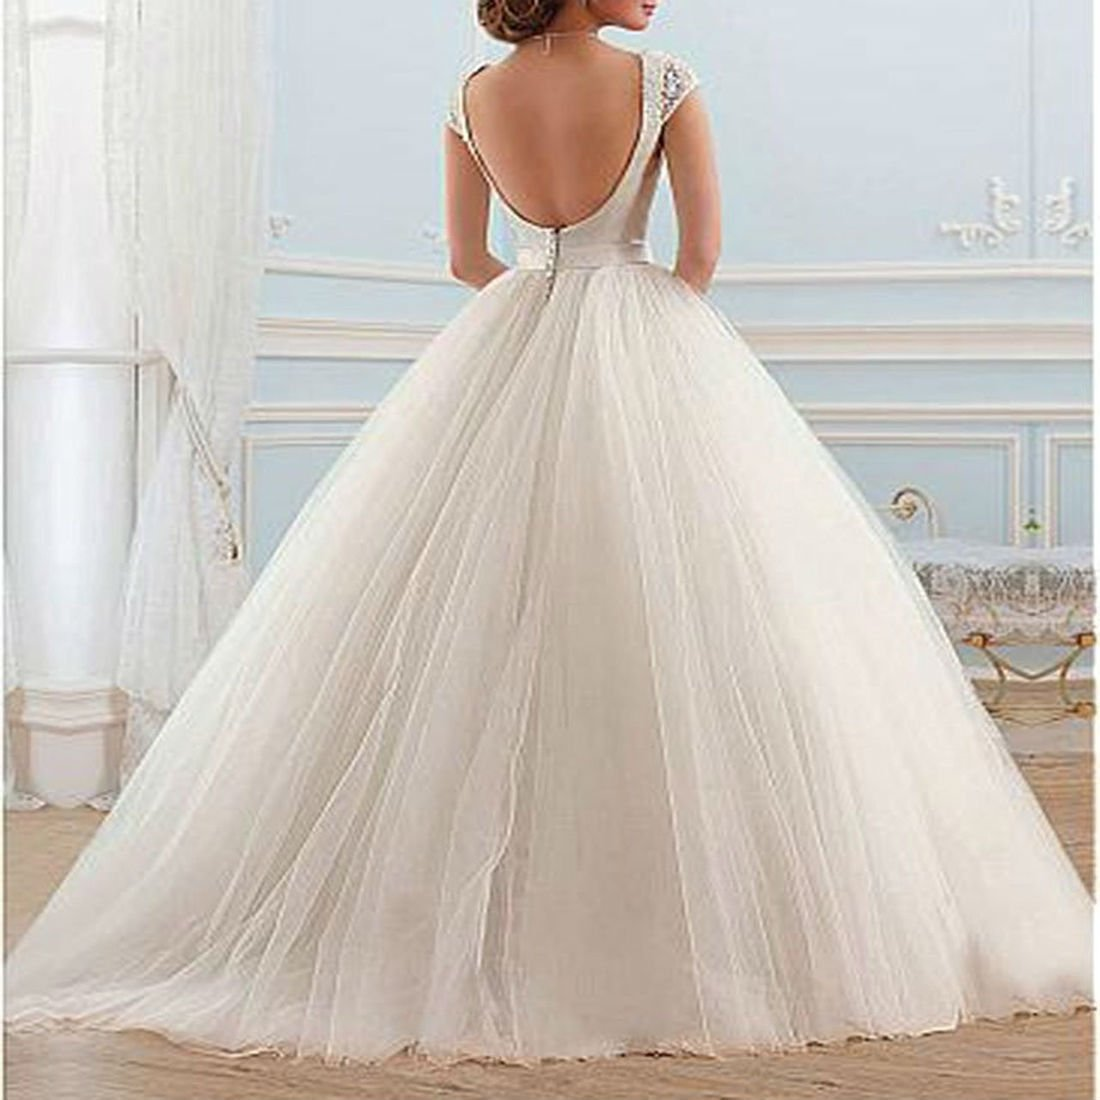 Yilian Cinderella Beaded Cap Sleeve Backless Tulle Ball Gown Wedding Dress